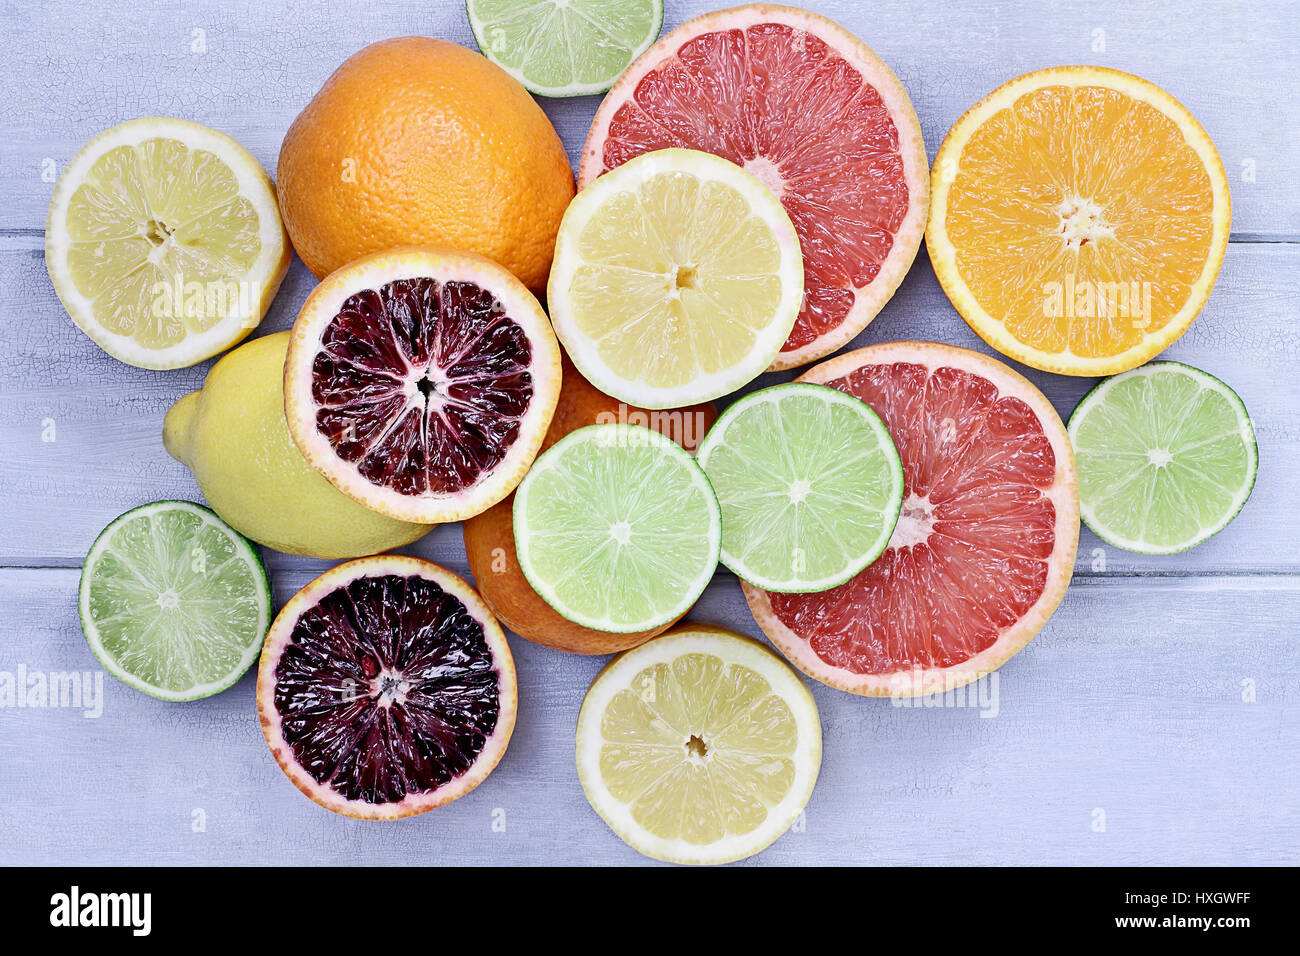 Variety of citrus fruits (orange, blood oranges, lemons, grapefruits, and limes) over a blue wood table top rustic - Stock Image